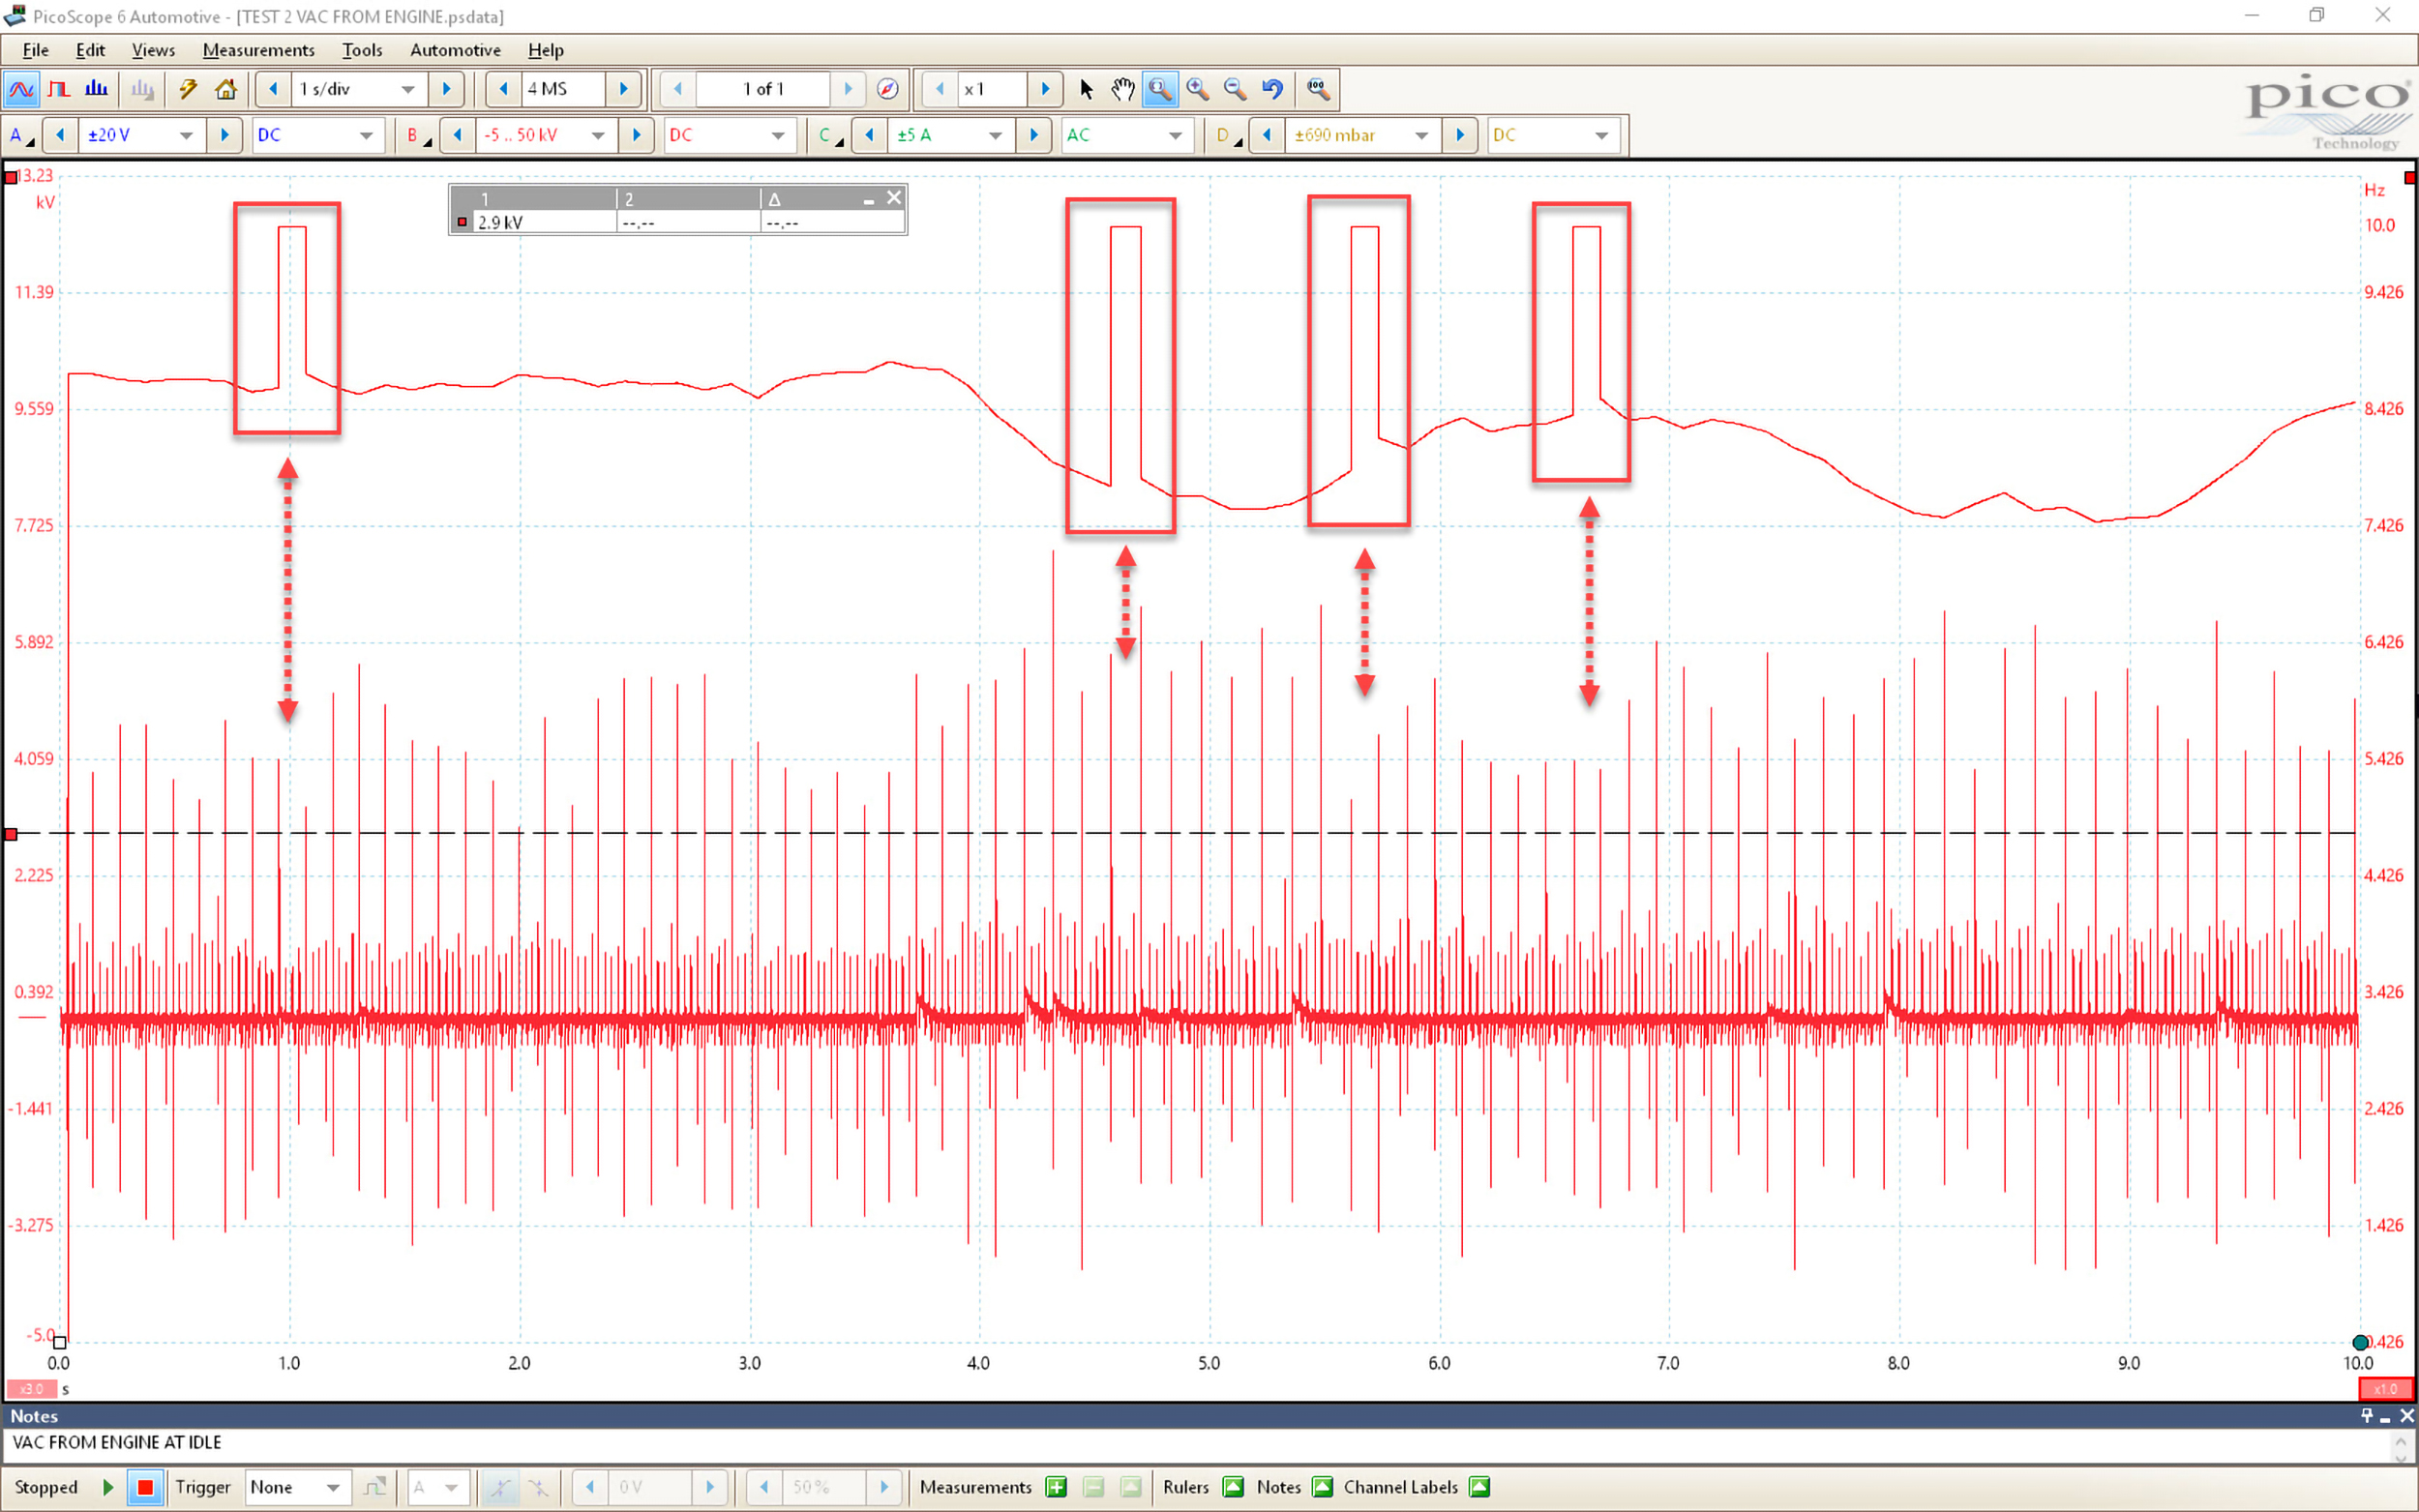 Screenshot from PicoScope 6 Automotive illustrating the timing frequency.